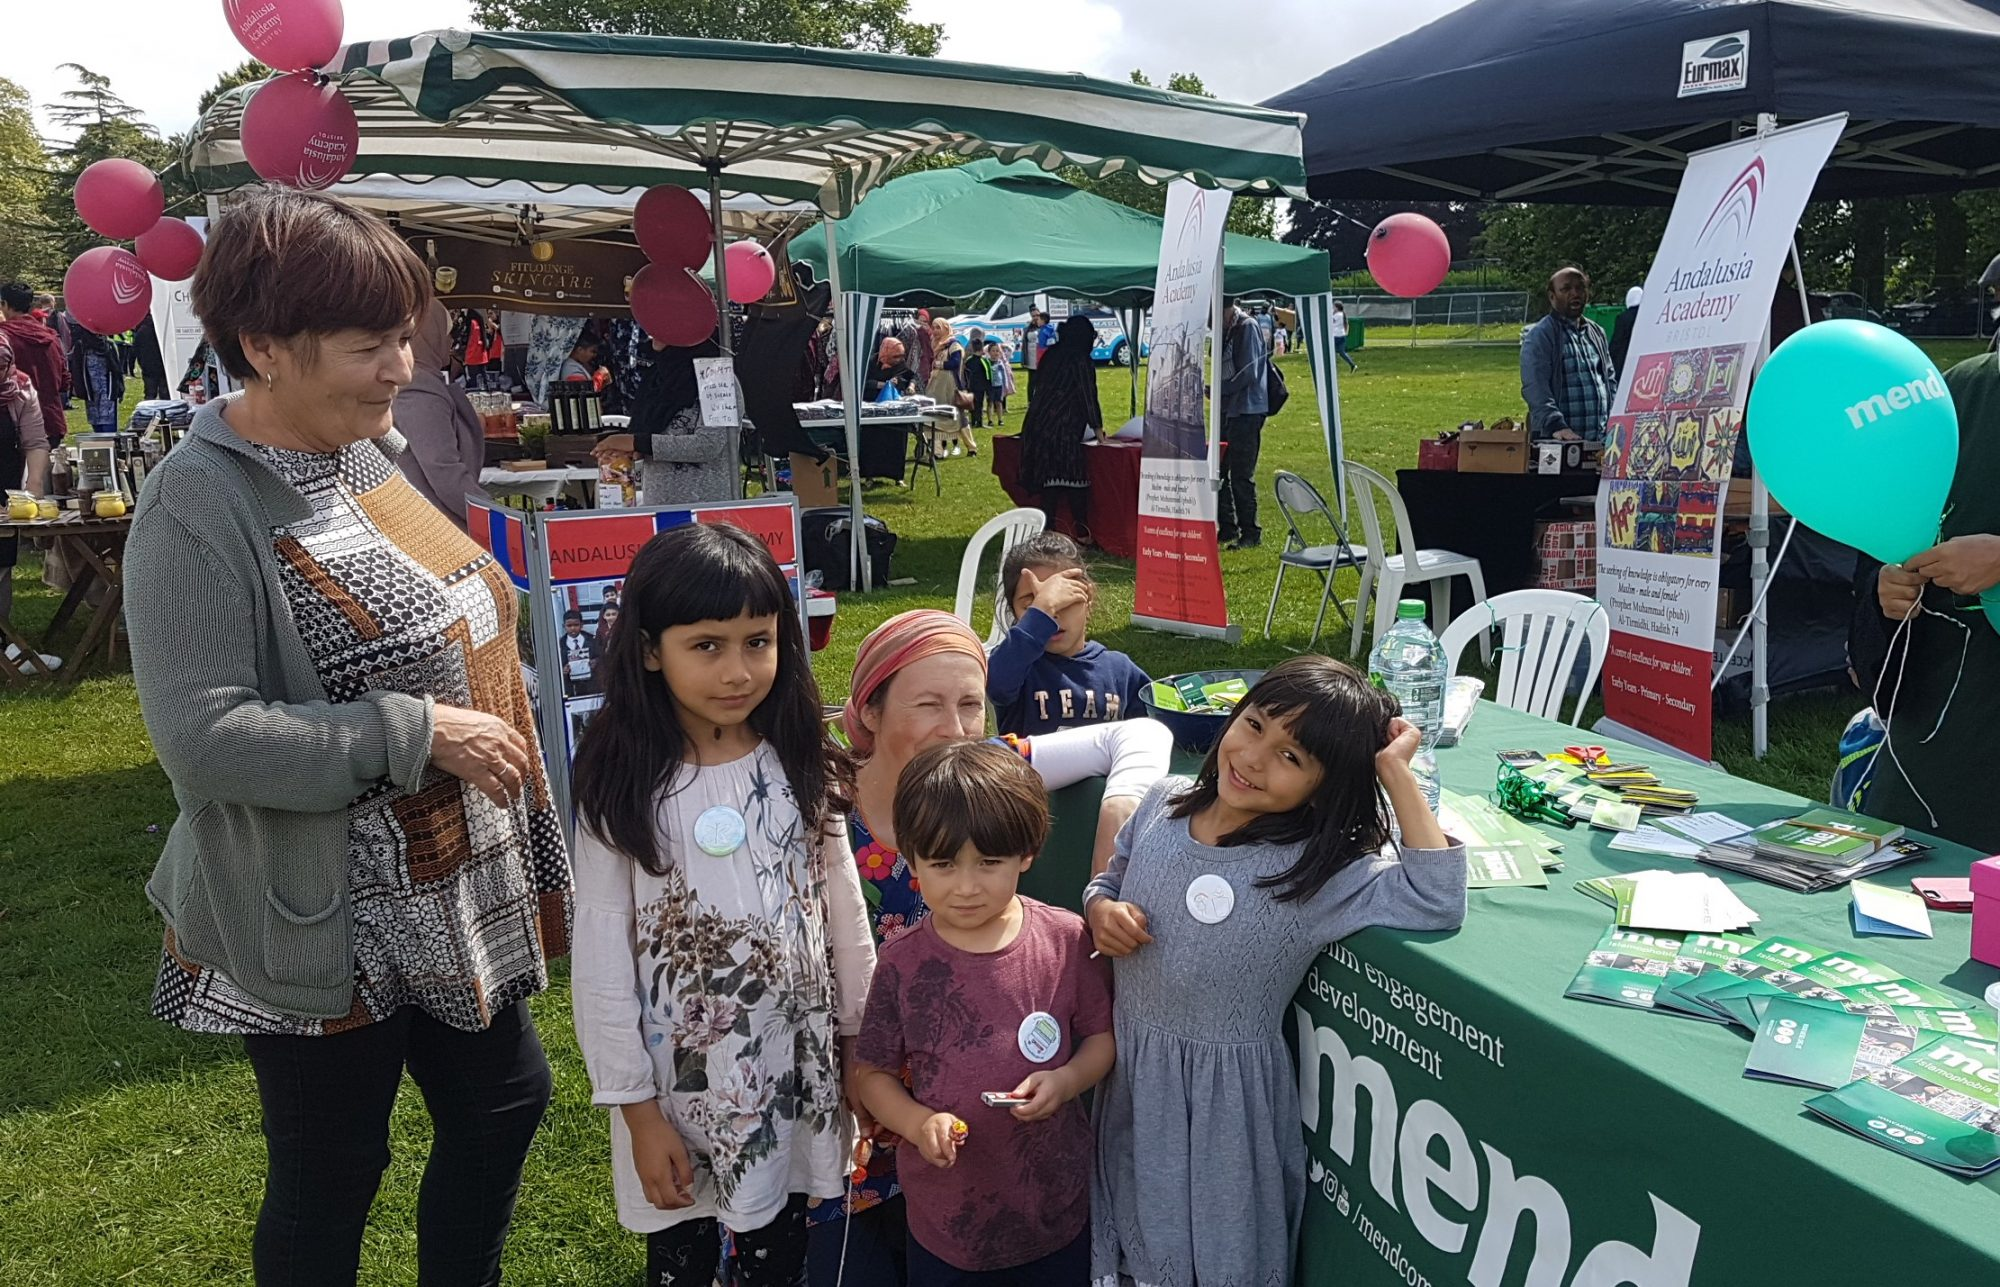 MEND at the Islamic Cultural Fayre, Bristol August 18, 2019